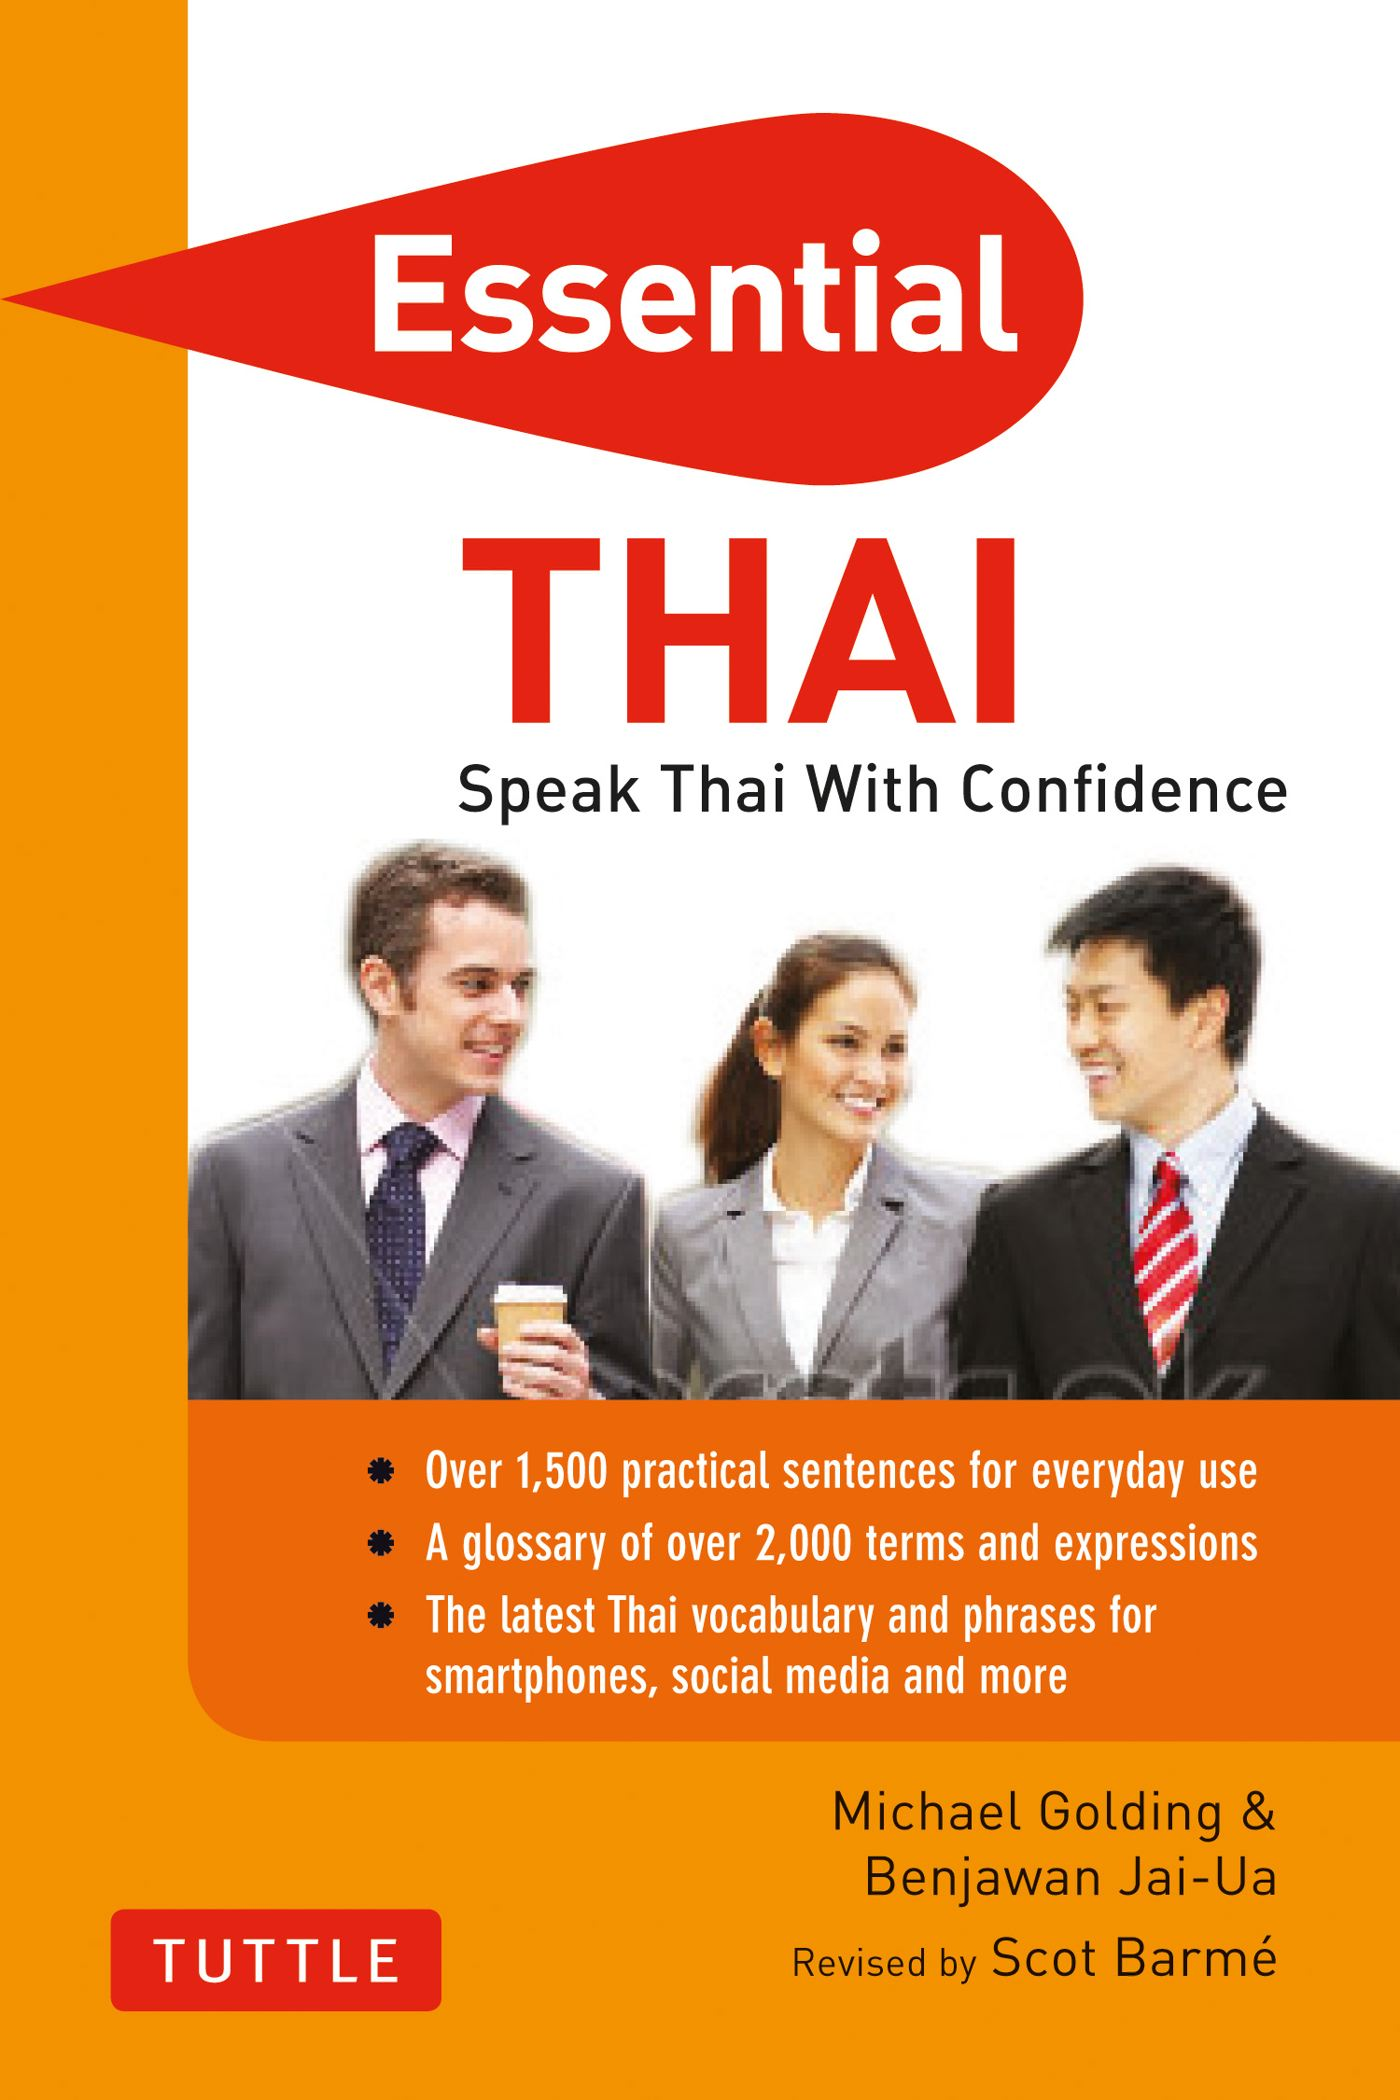 Essential-thai-9780804842440_hr